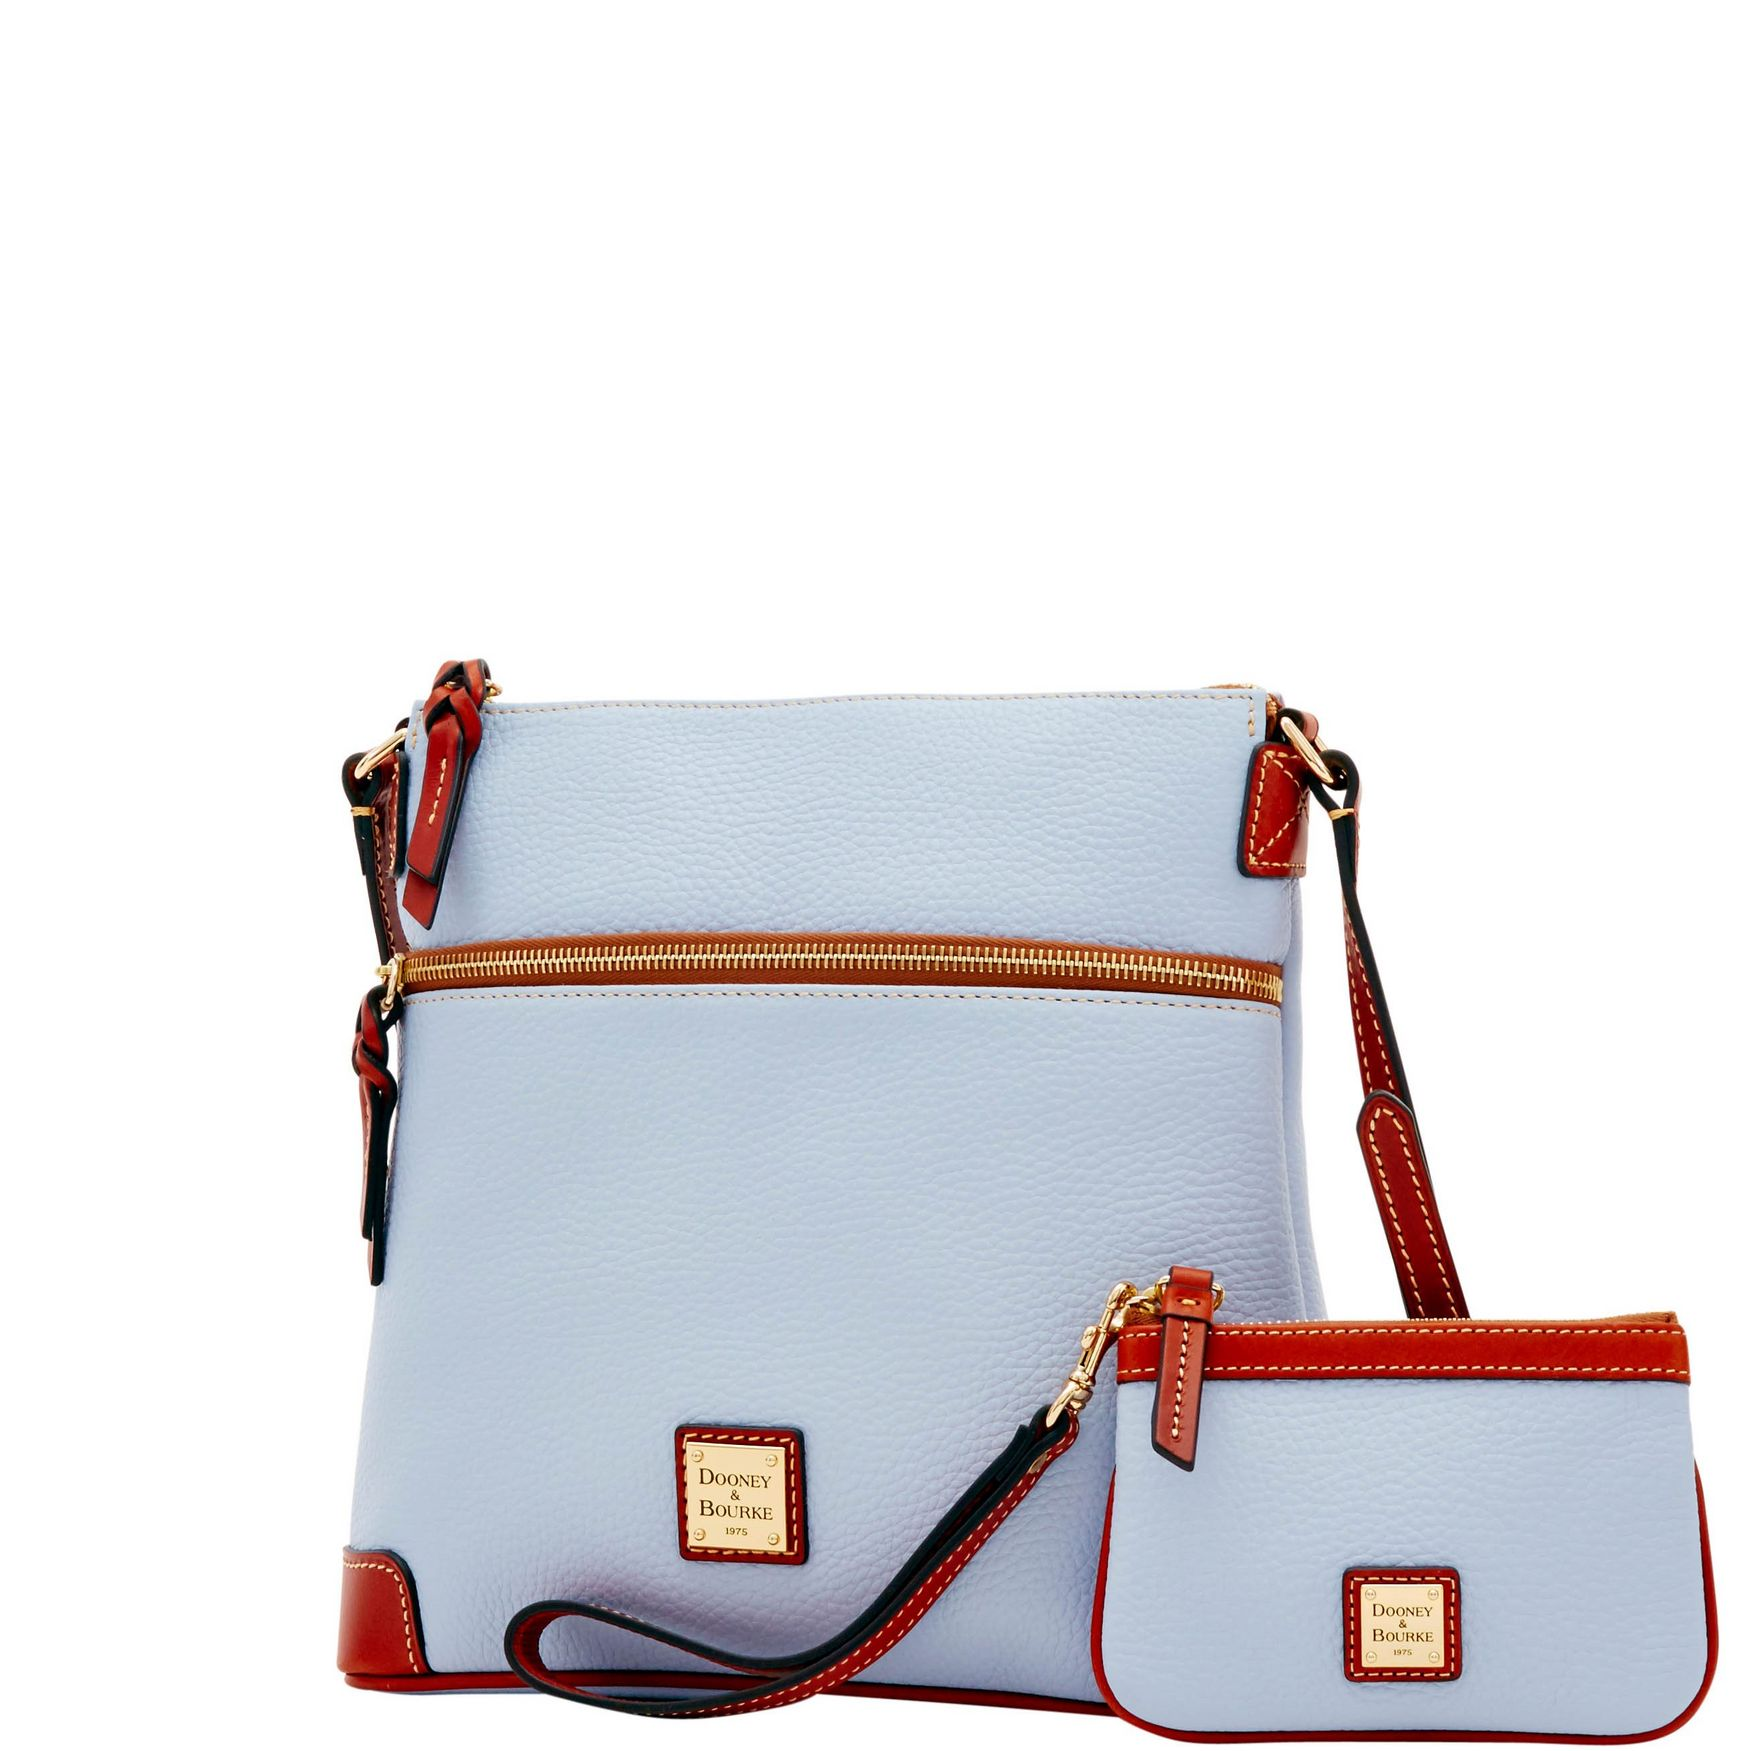 Dooney-amp-Bourke-Pebble-Grain-Crossbody-Medium-Wristlet-Shoulder-Bag thumbnail 20